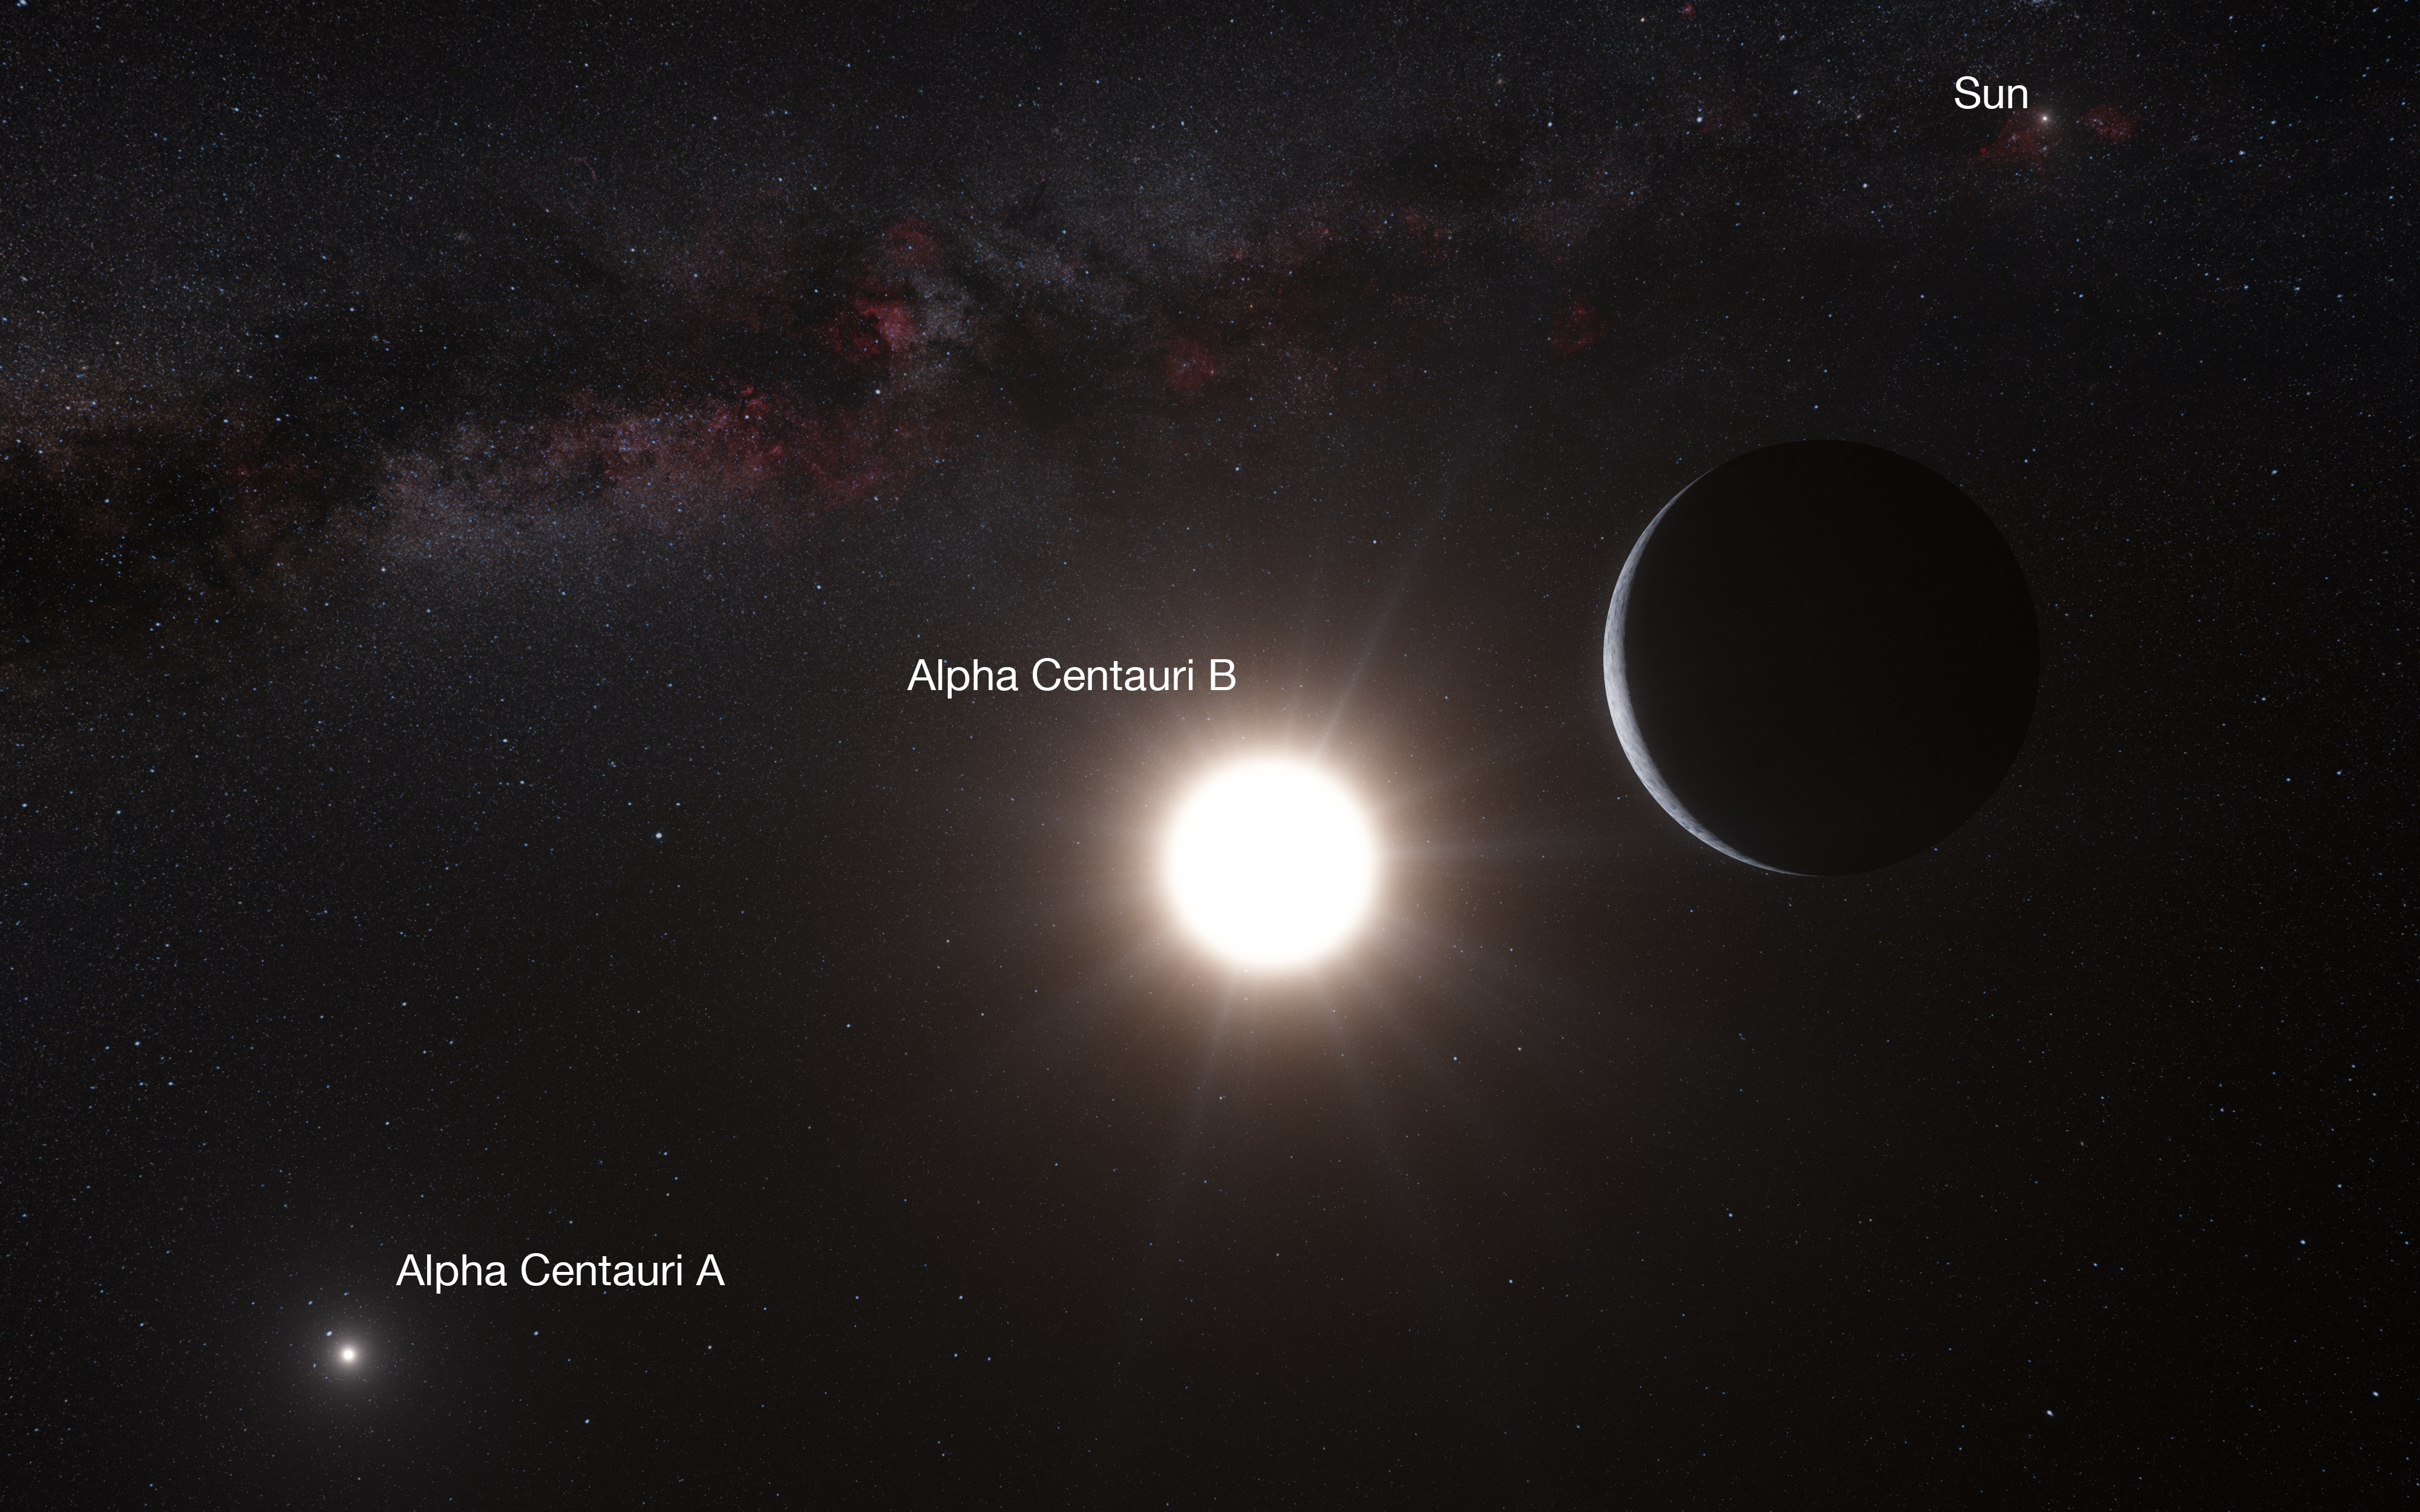 Alpha Centauri (Ascension)